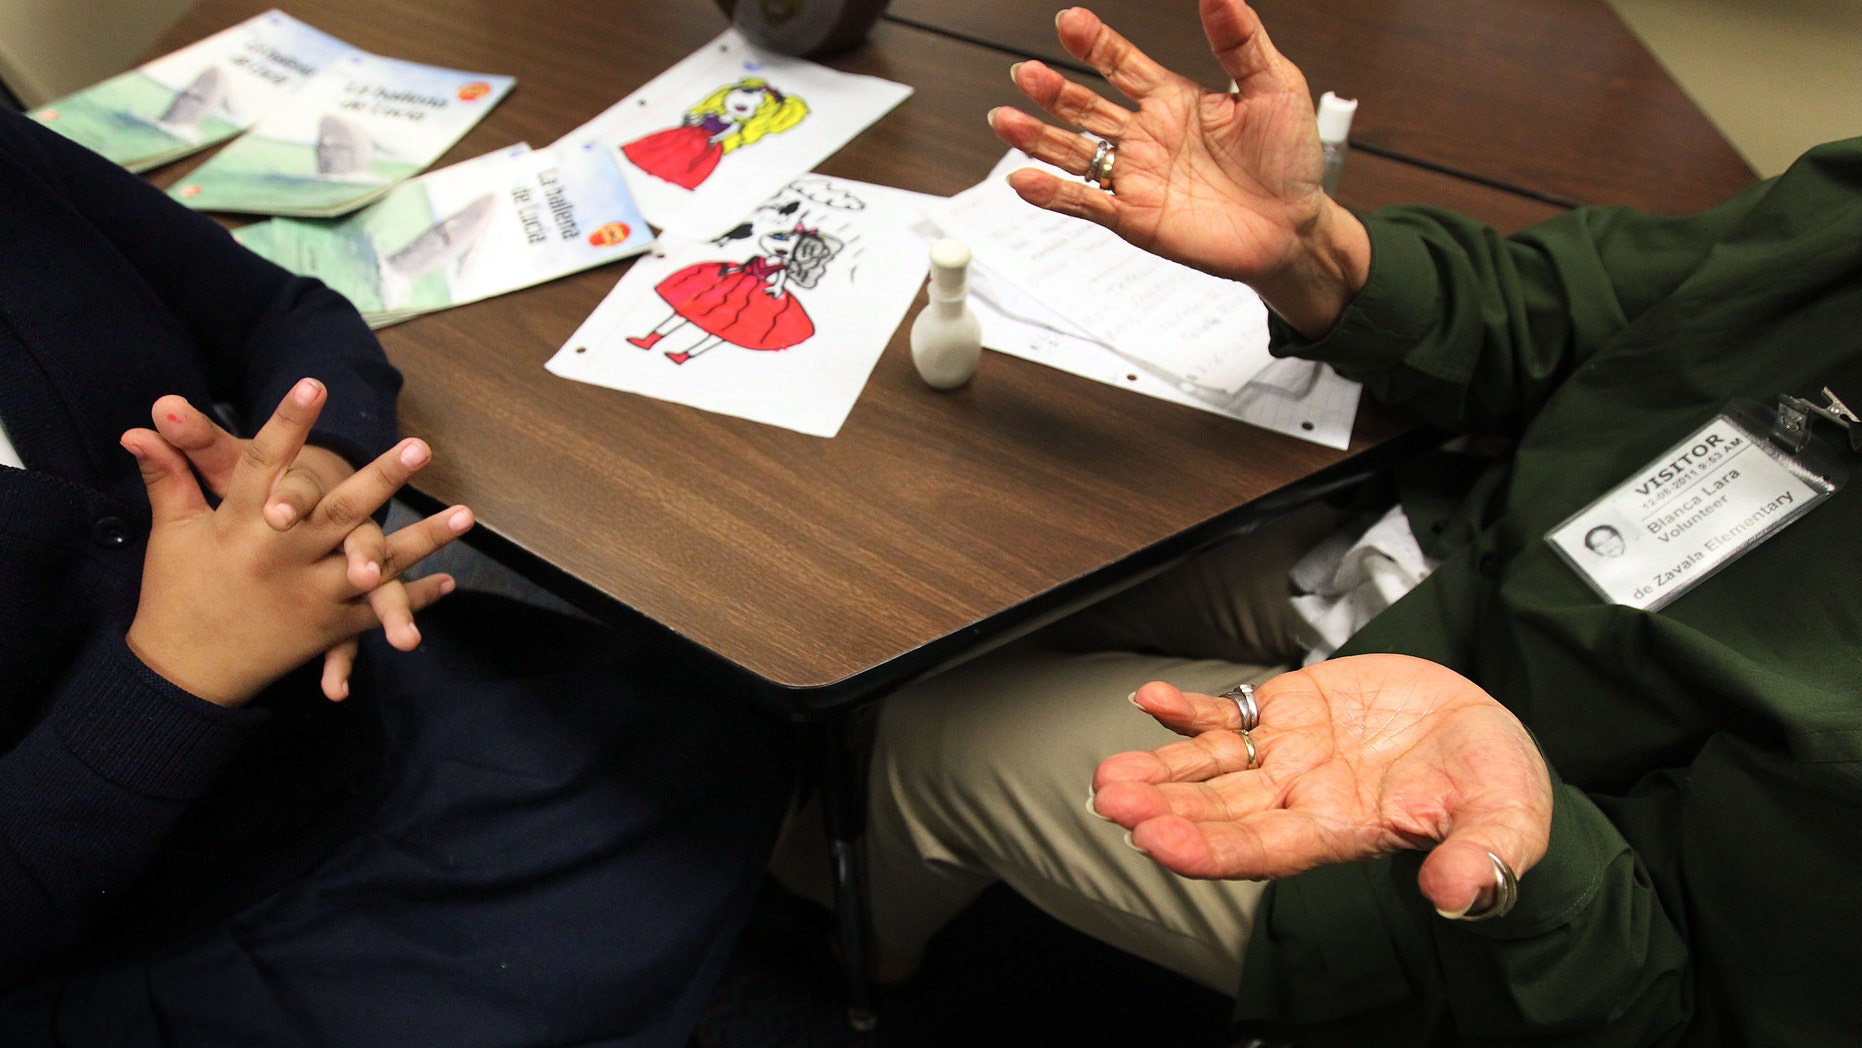 Blanca Lara, a senior volunteer, right, works with Teresa Rios, 8, left, during a tutoring session on Feb. 23, 2012 at Zavala Elementary School in Dallas, Texas. (AP Photo/The Dallas Morning News, Mona Reeder)